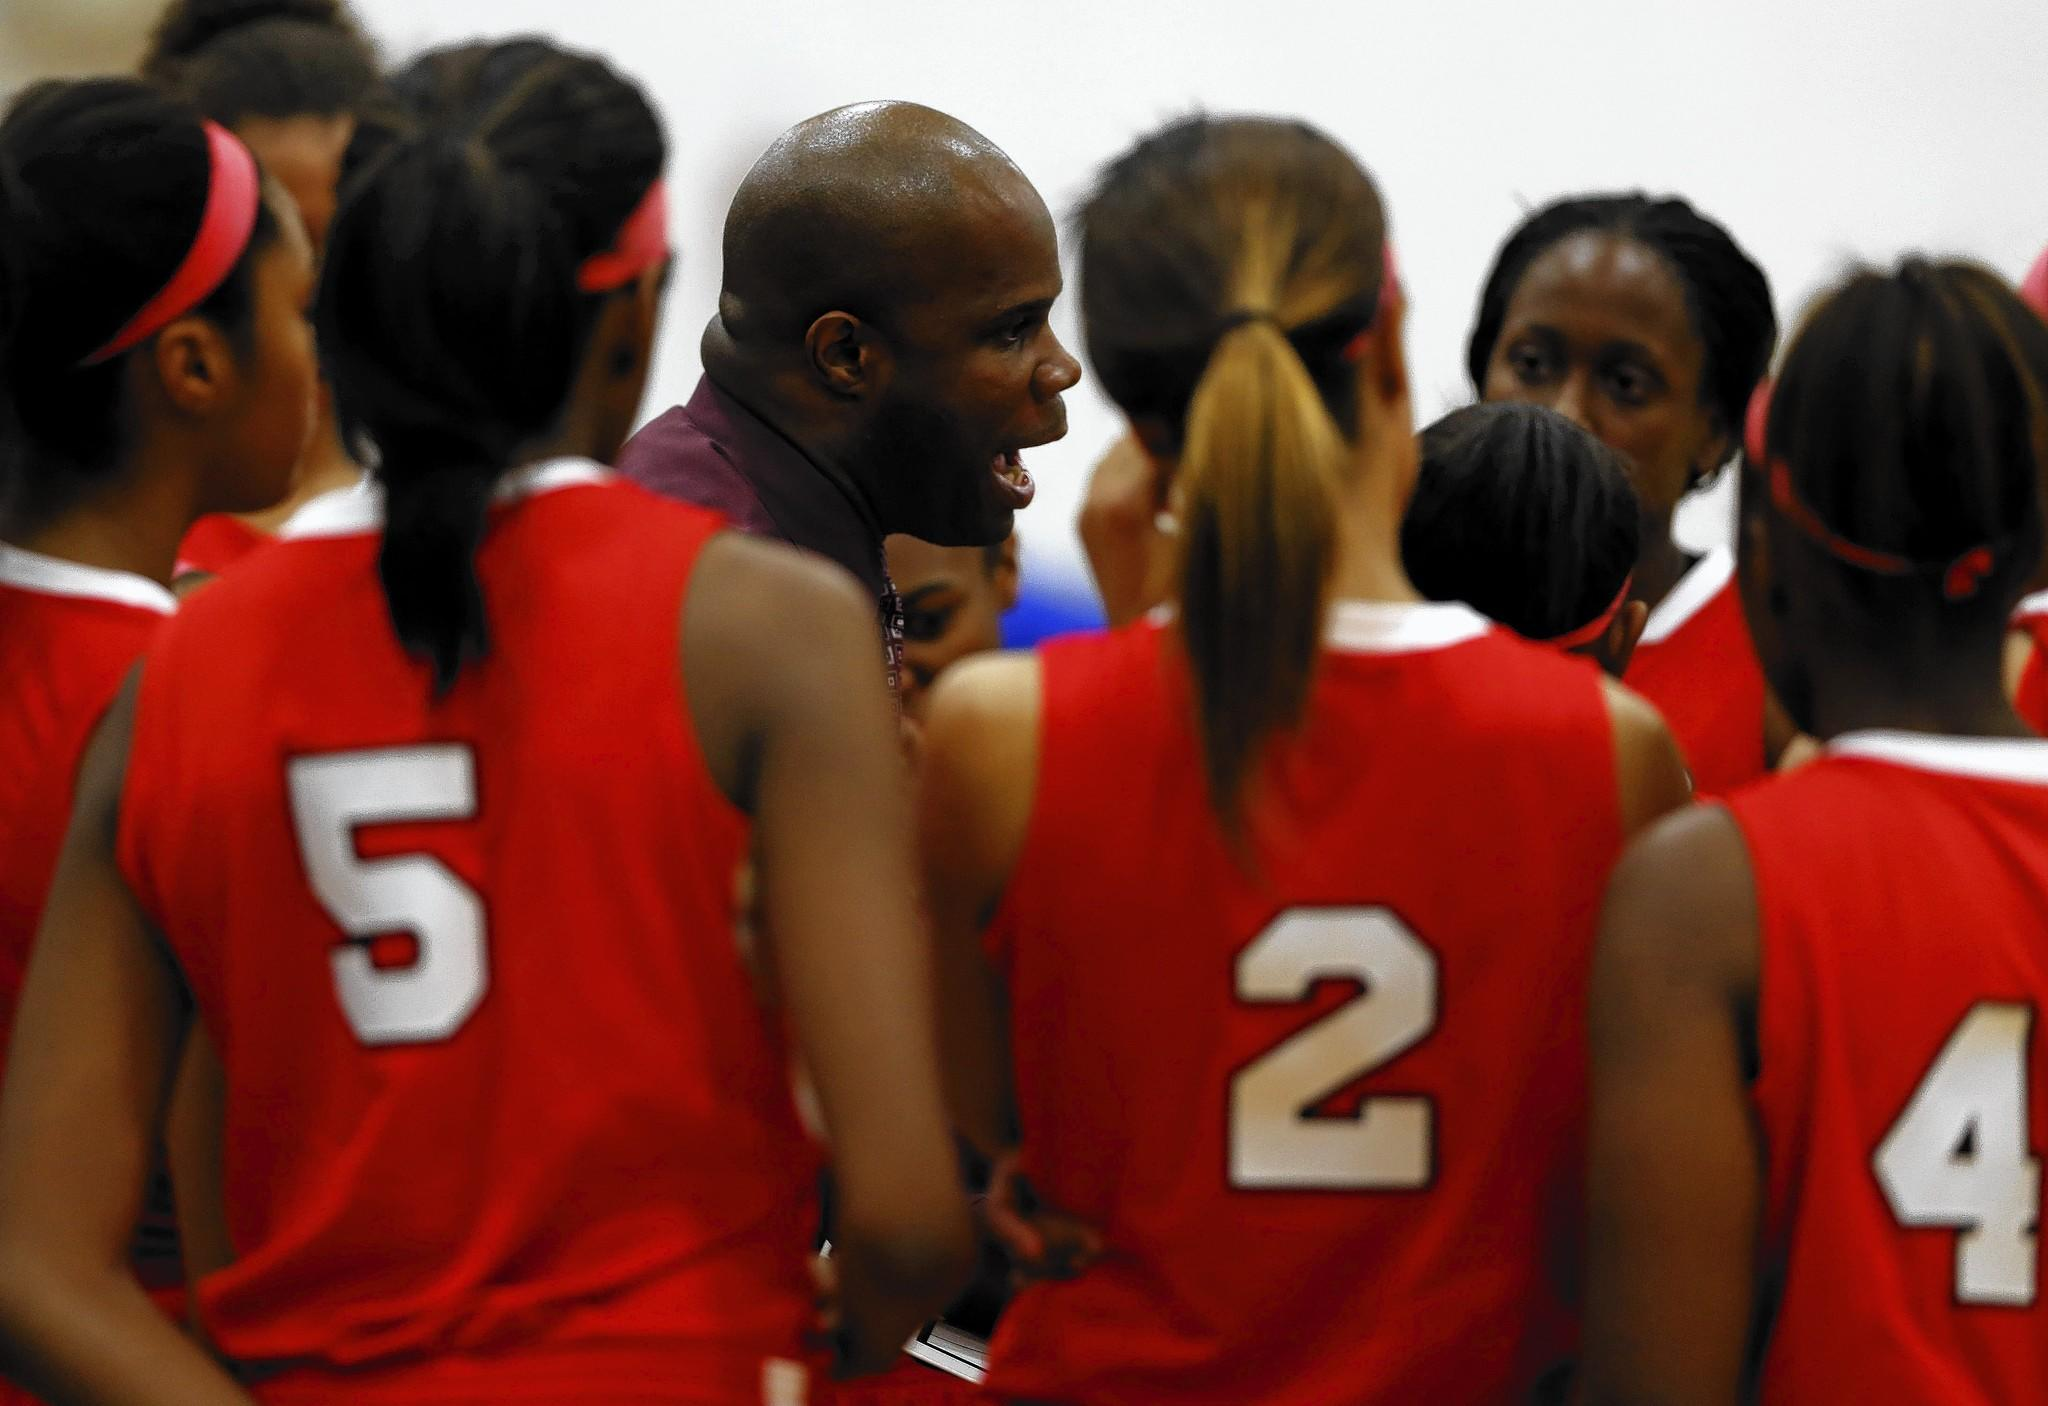 Homewood-Flossmoor girls varsity basketball coach Anthony Smith speaks to his players Thursday during a game against Sandburg High School in Orland Park.